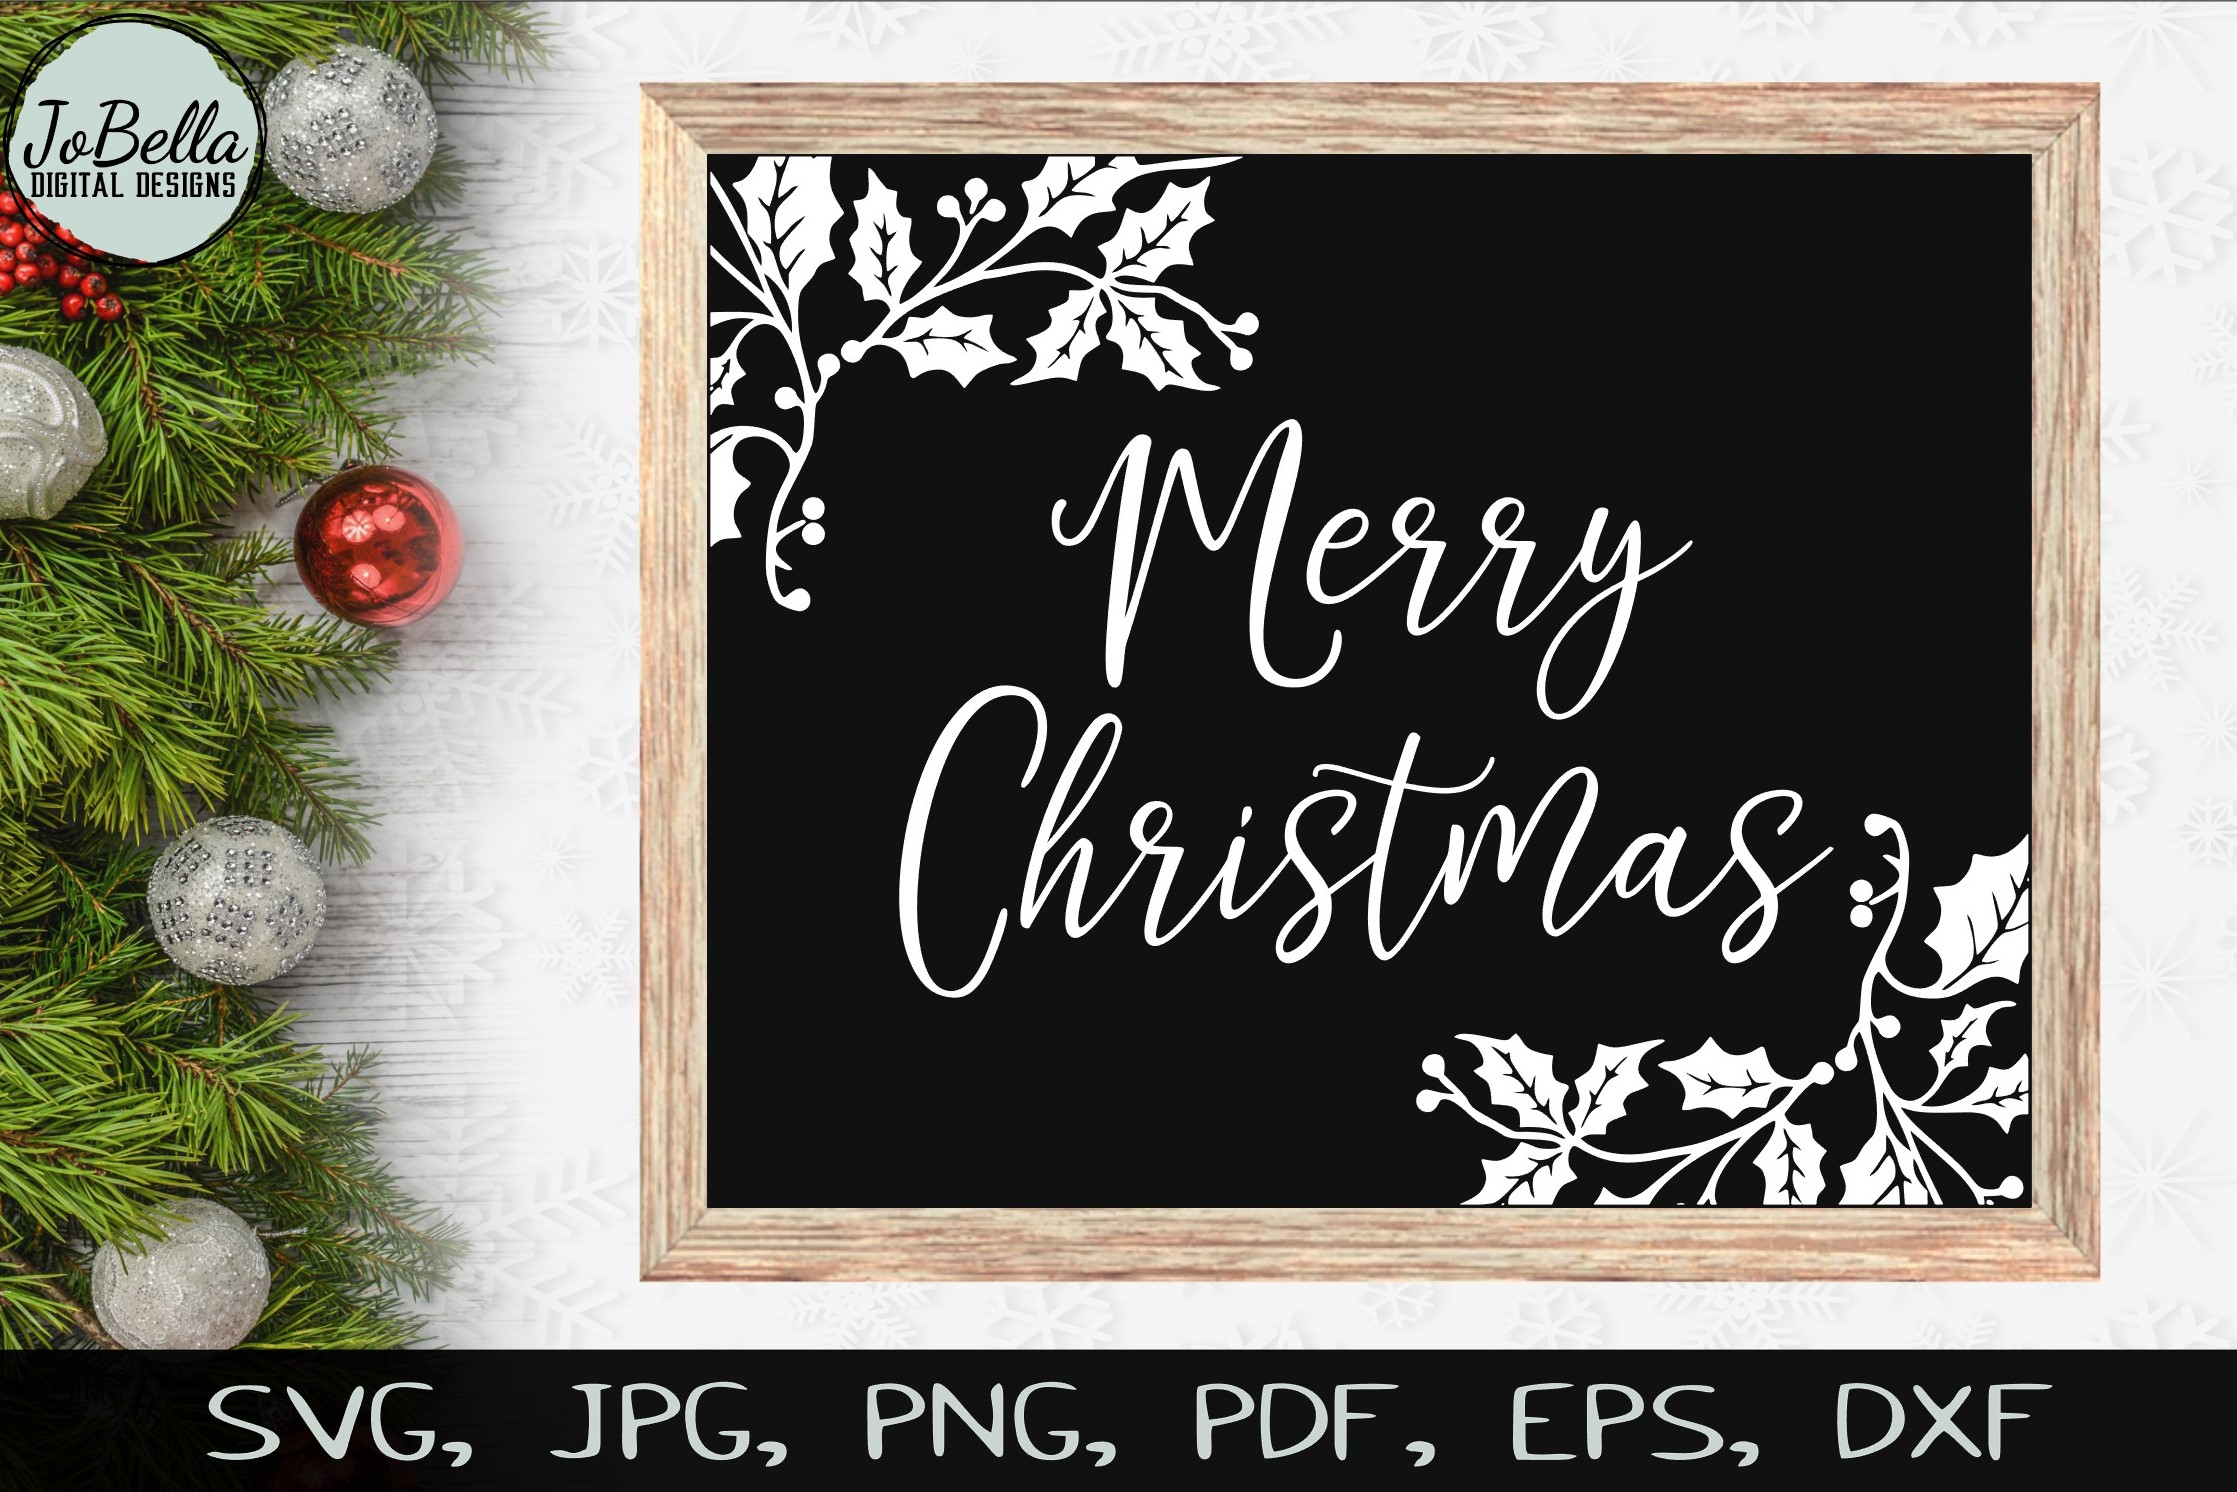 Holly Merry Christmas SVG, Sublimation PNGs, & Printables example image 1